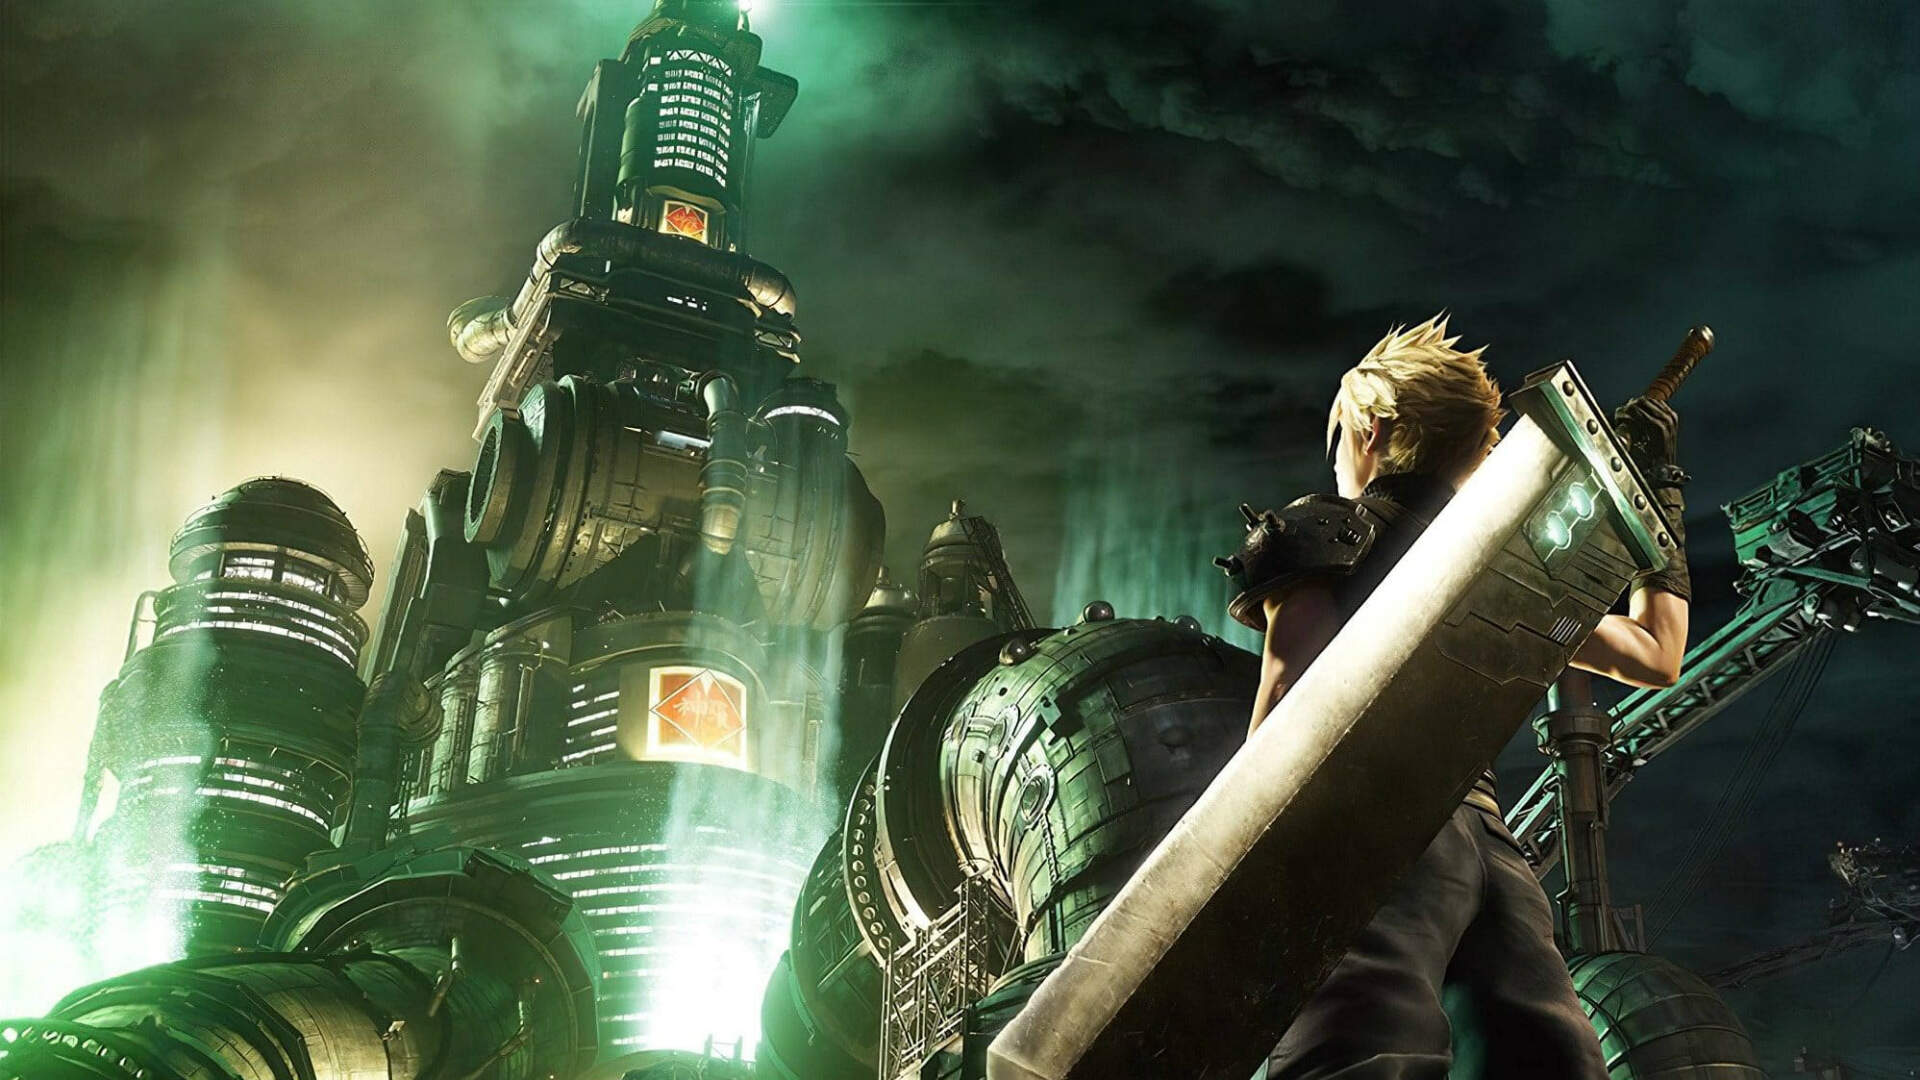 Final Fantasy 7 Remake Has a Classic Mode For Proper Turn-Based Combat